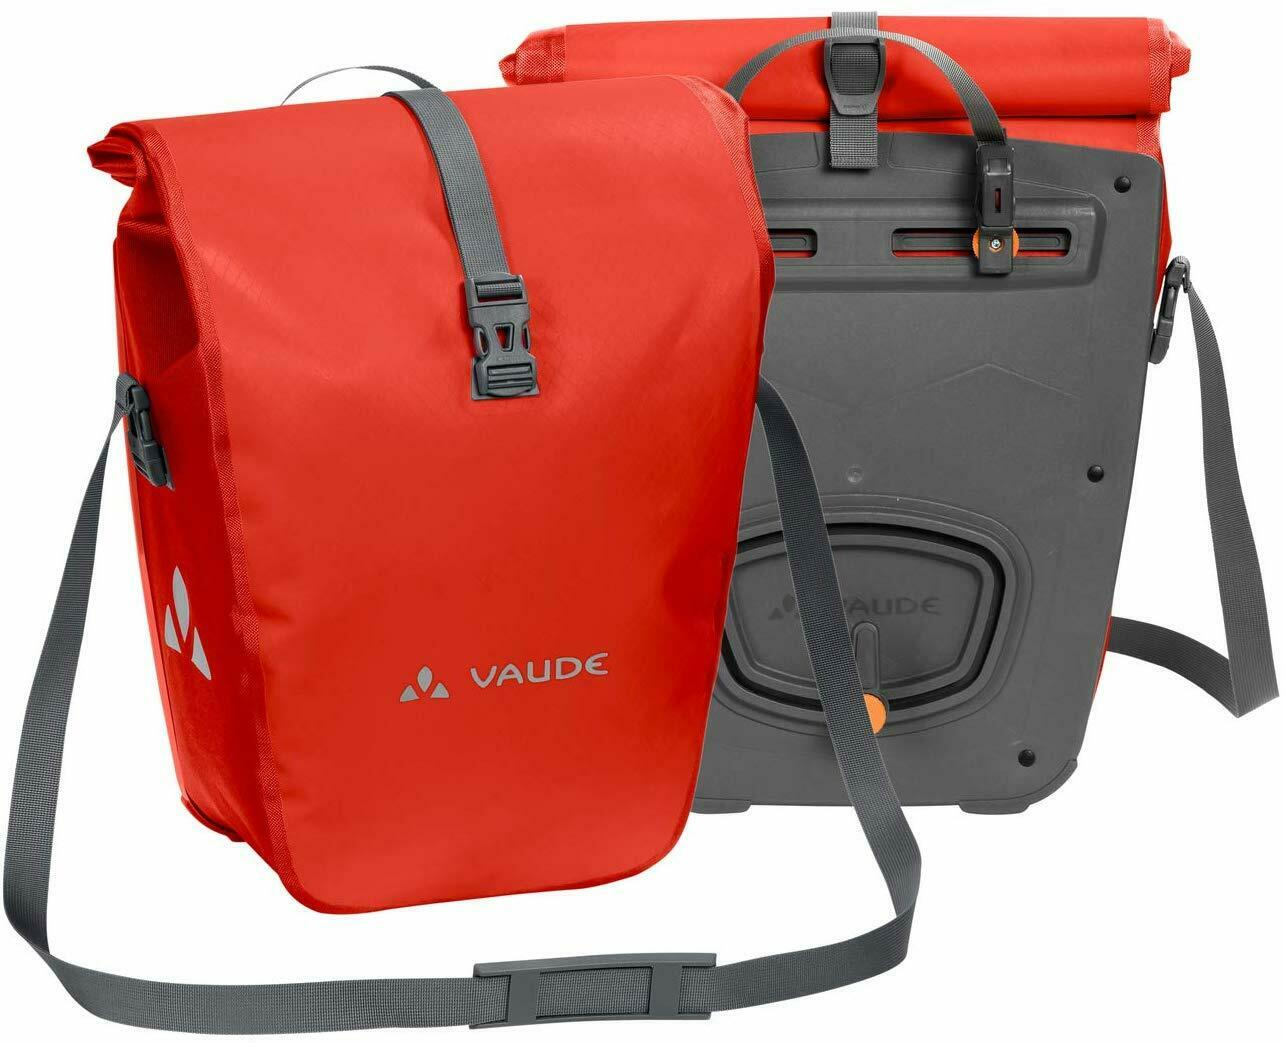 VAUDE Rear Pannier Bike Bag Set of 2 48L Tarpaulin Bike Panniers Waterproof NEW